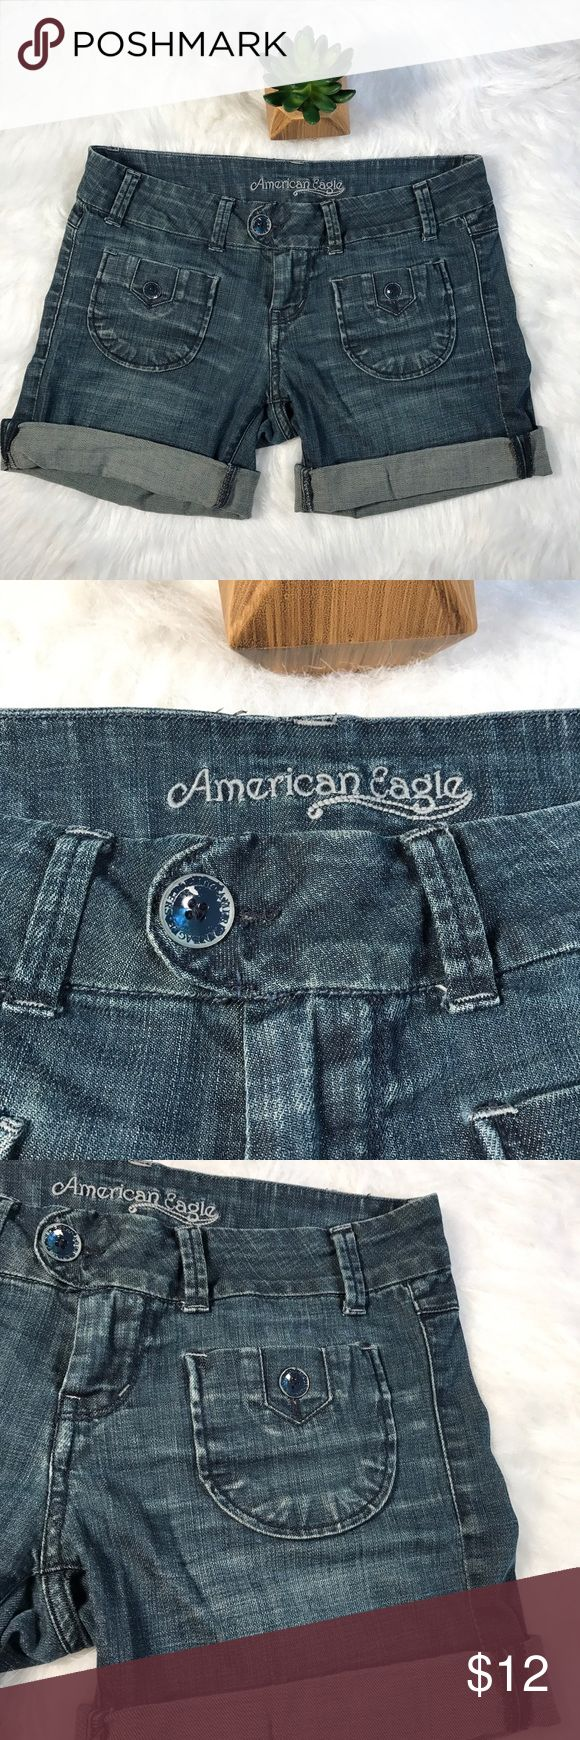 American Eagle trouser style Bermuda jean shorts Classic trouser style Bermuda length jean shorts from American Eagle Outfitters. Size 4 with some stretch. Can be worn at Bermuda length or cuffed shorter. Functional slit pockets on back and small buttoned pockets on front. Well loved but no flaws except a little paint peeling off of buttons. (Close up) American Eagle Outfitters Shorts Jean Shorts